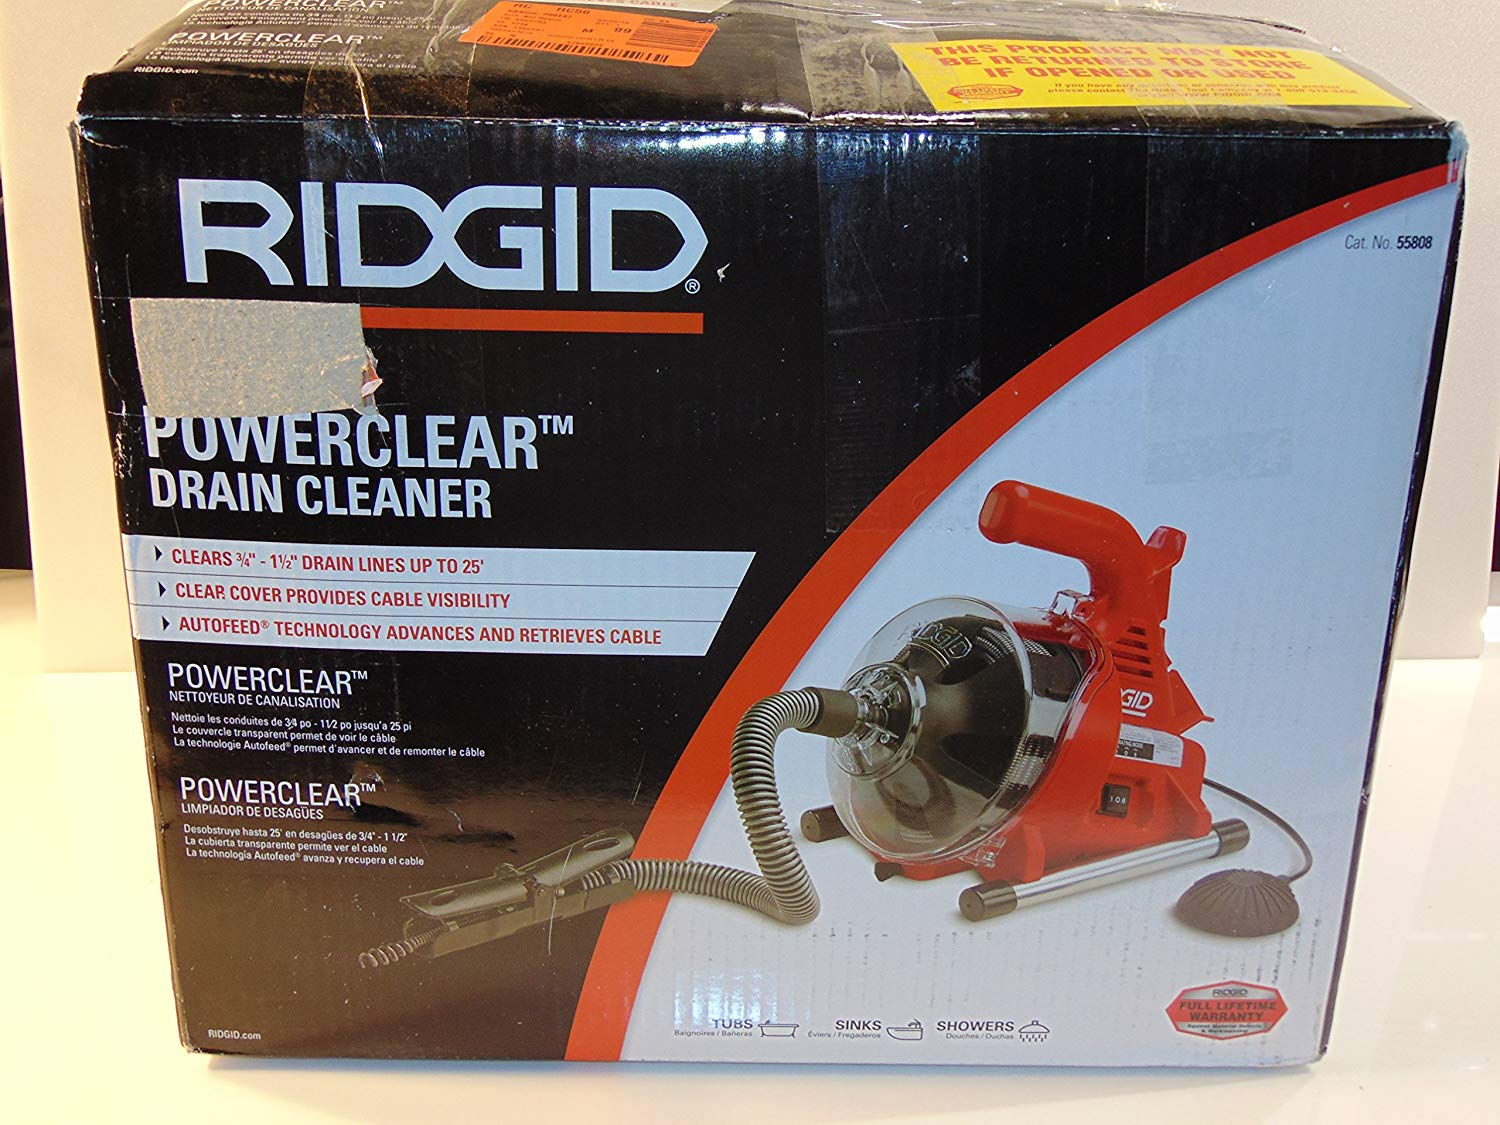 "Ridgid 55808 PowerClear Drain Cleaning Machine 120V Drain Cleaner Cleans Tub, Shower or Sink Blockages from 3/4"" to 11/2"" diameter, Red"